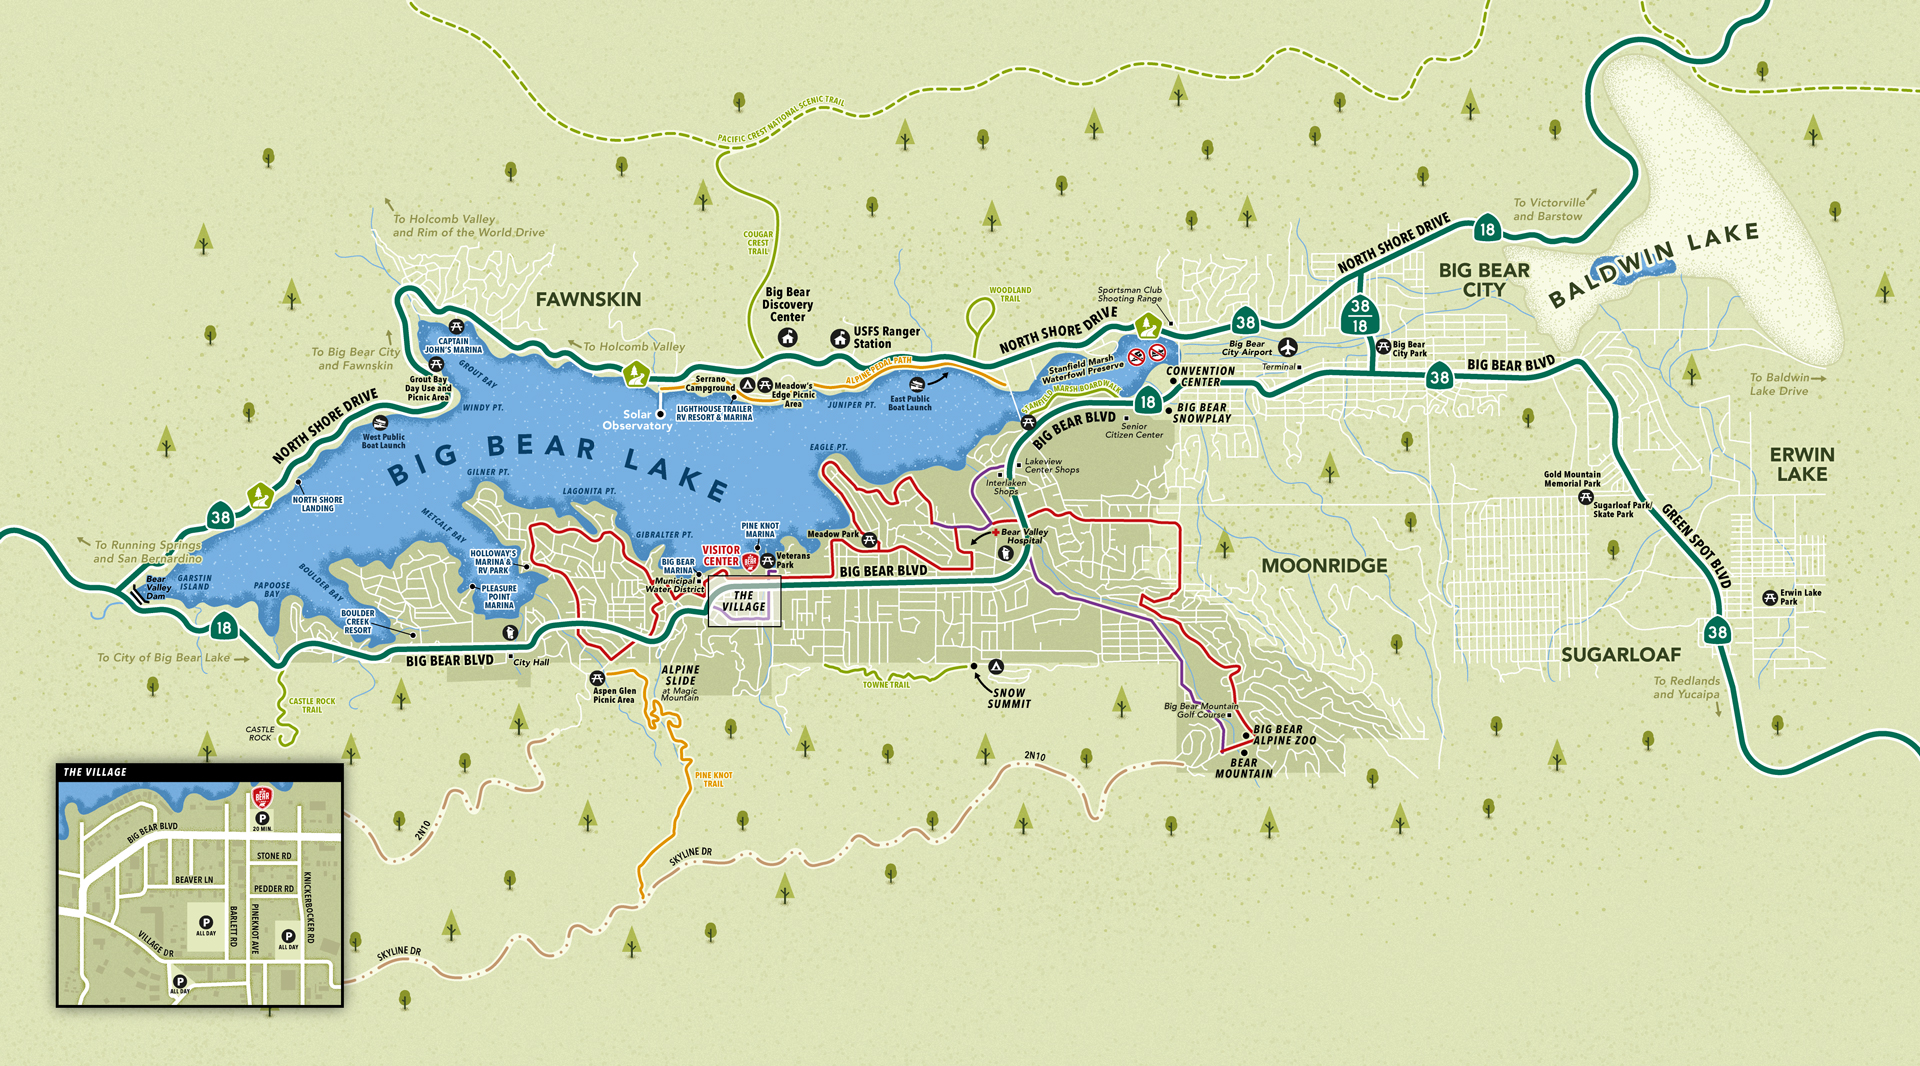 Big Bear Lake area map